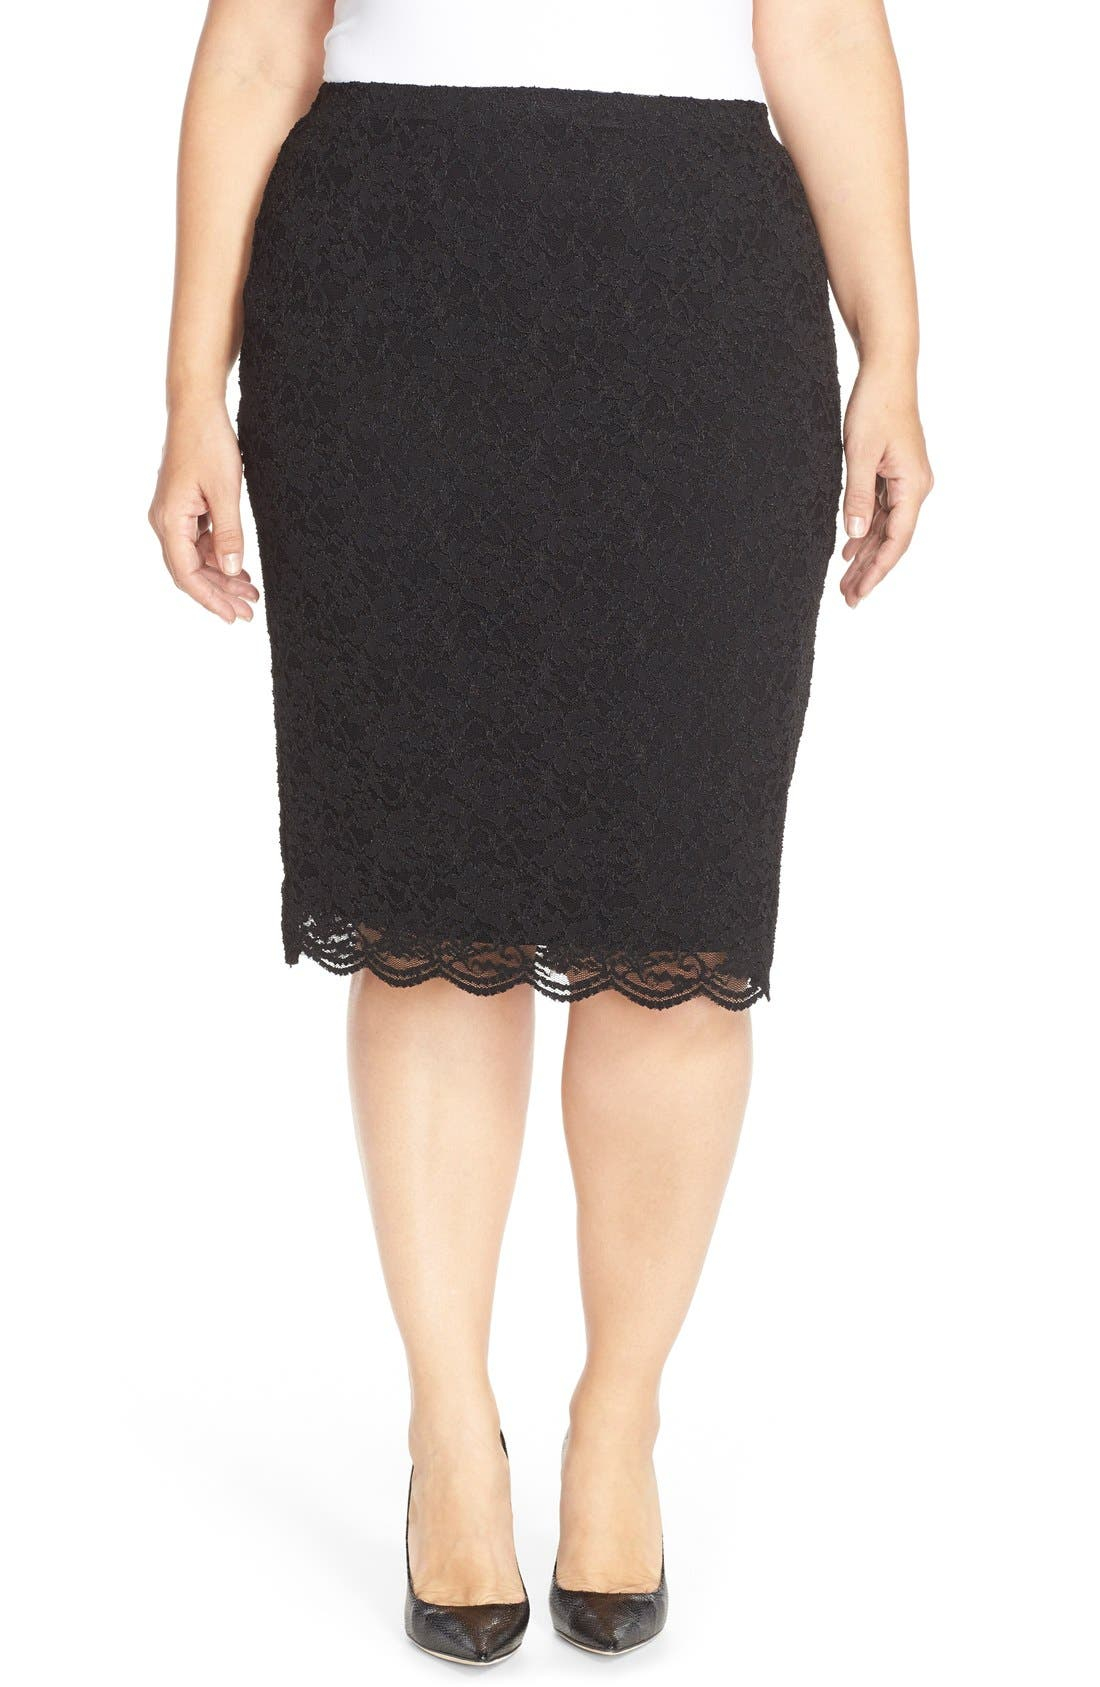 Alternate Image 1 Selected - Vince Camuto Stretch Lace Pencil Skirt (Plus Size)